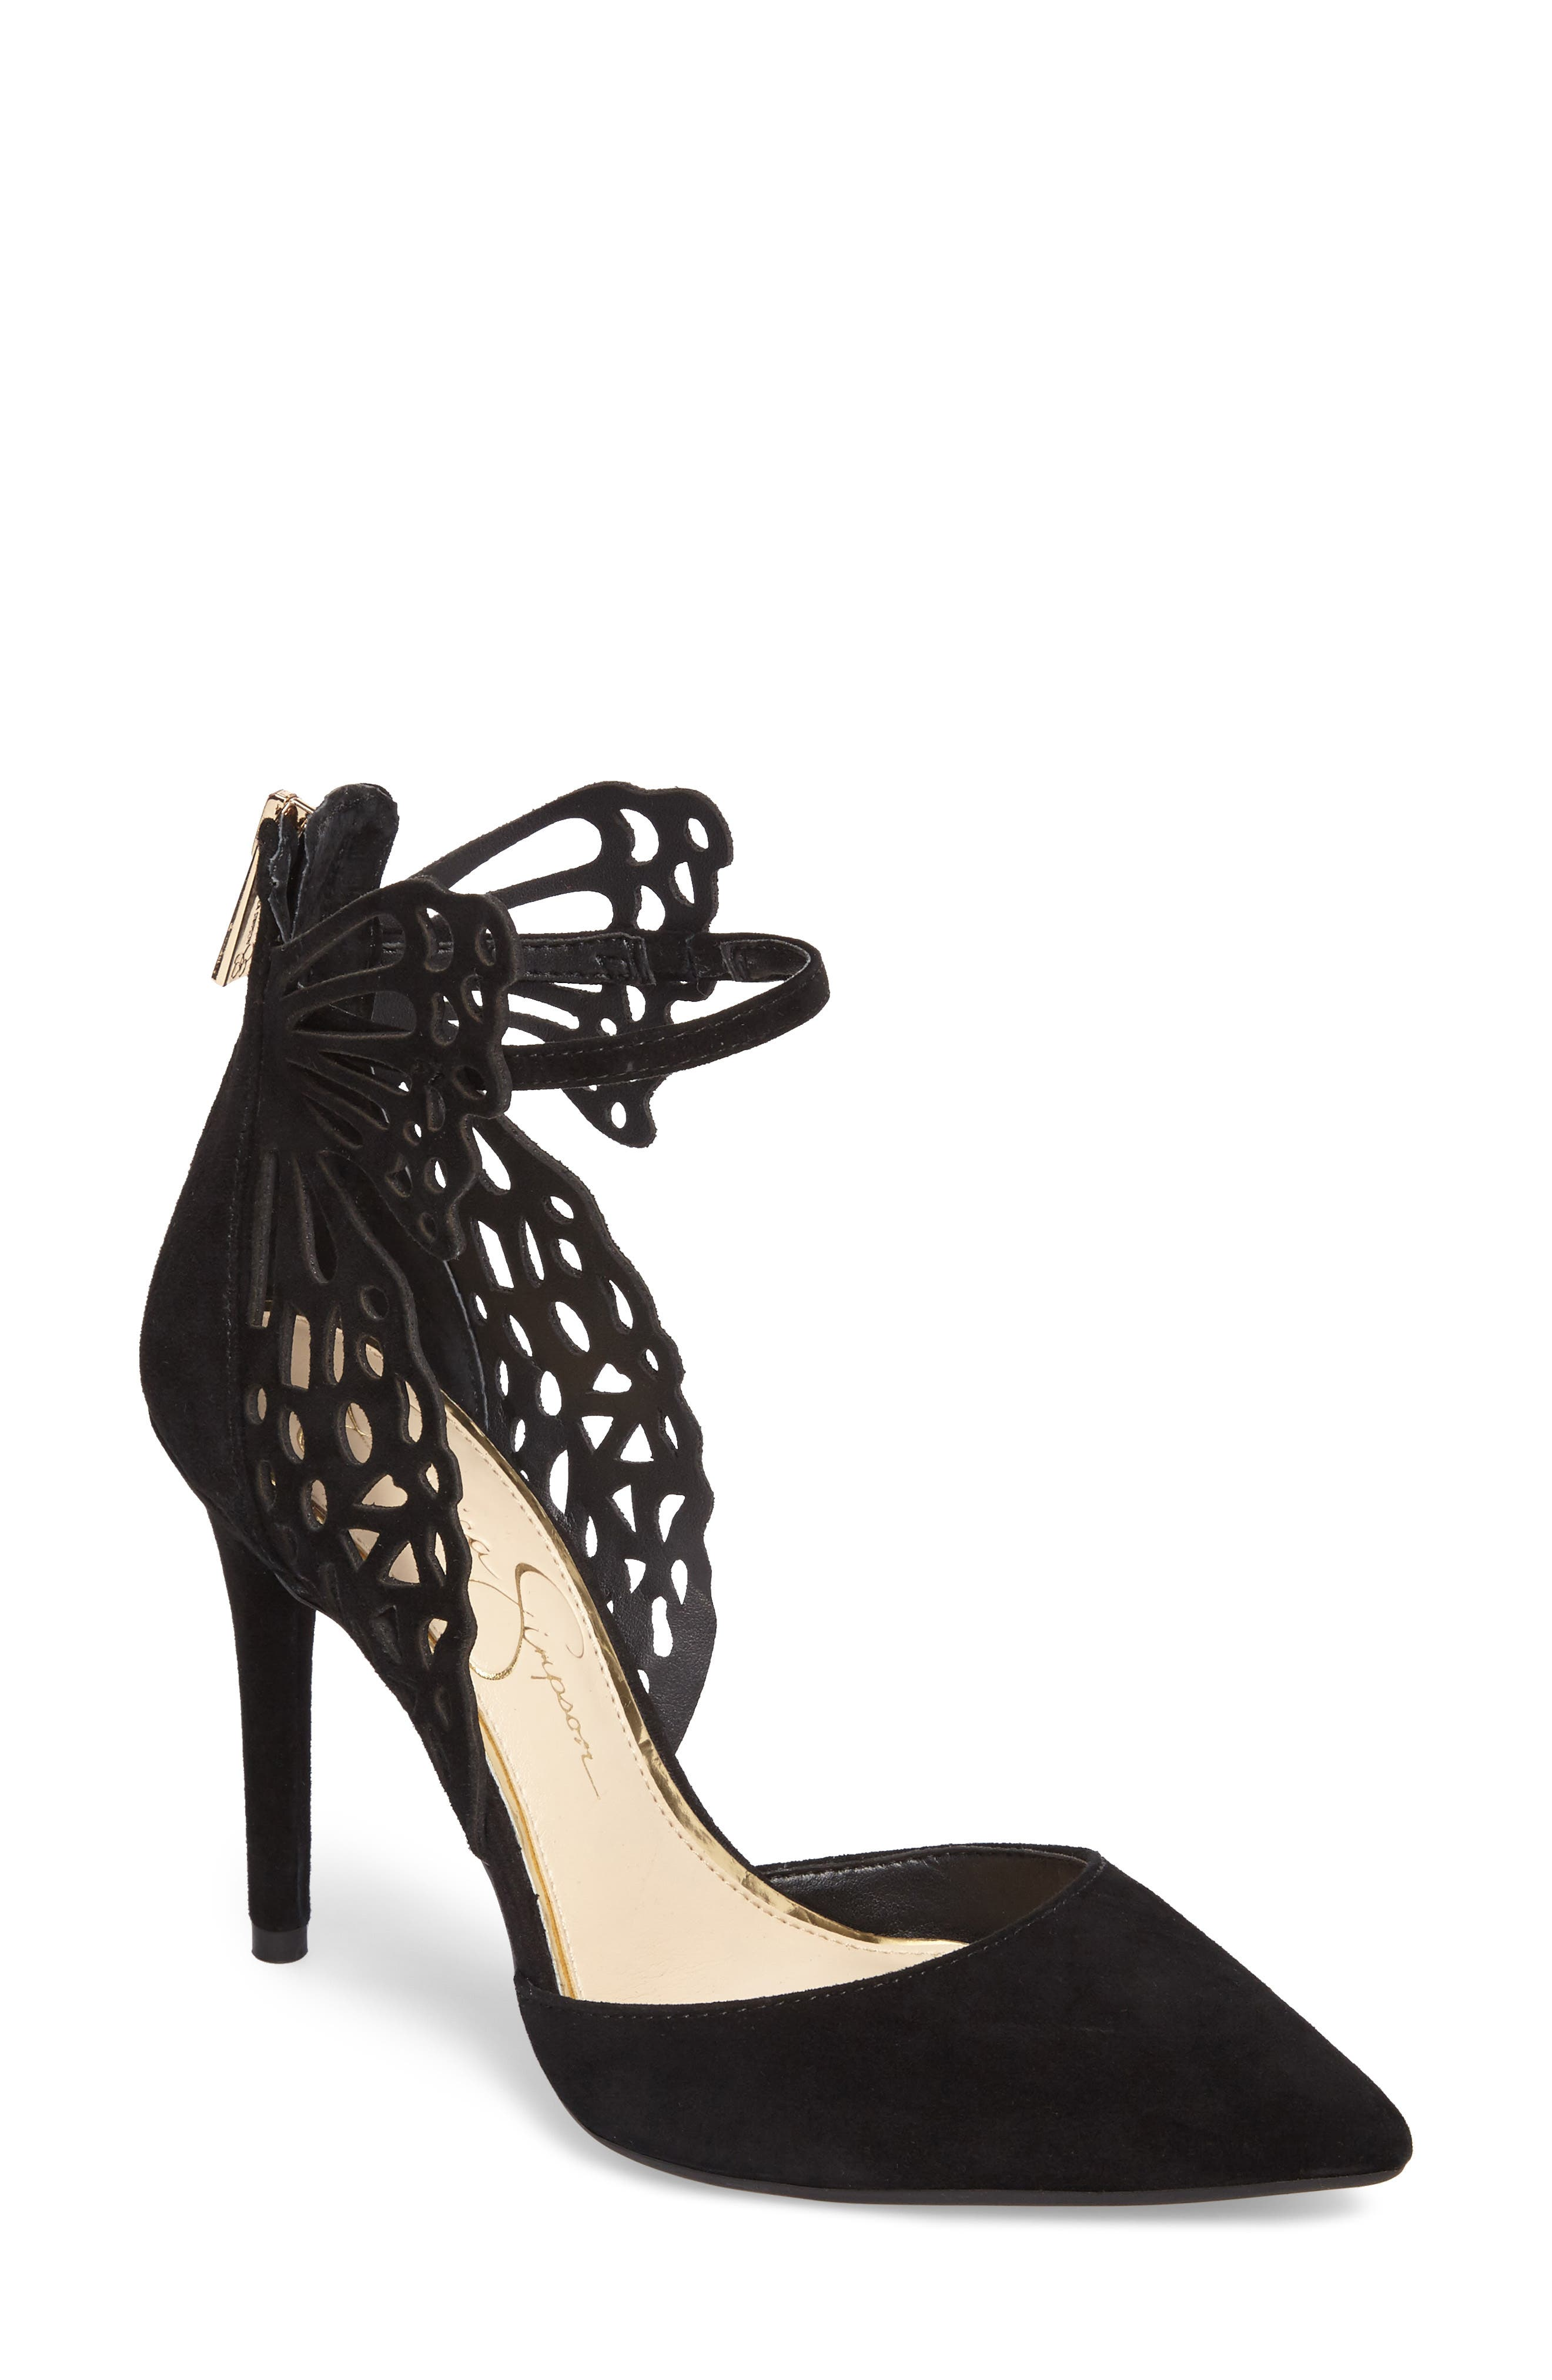 Leasia Butterfly Pump,                             Main thumbnail 1, color,                             001